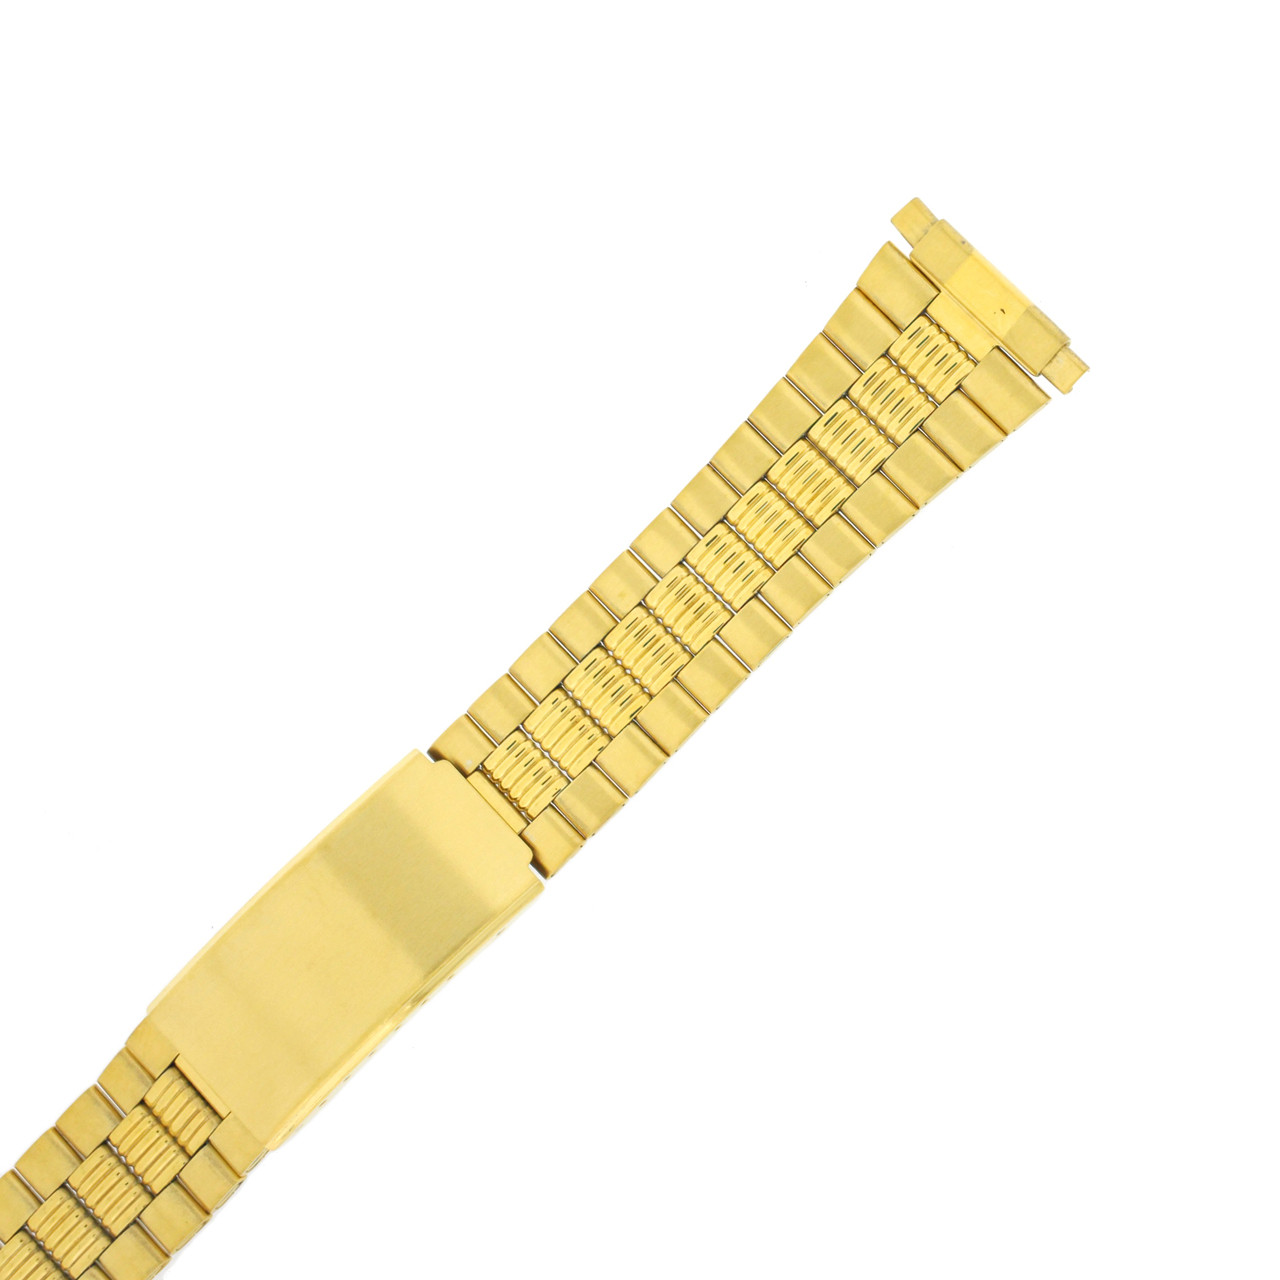 Watch Band Link Metal Gold-Tone Spring Ends 17mm-22mm TSMET221